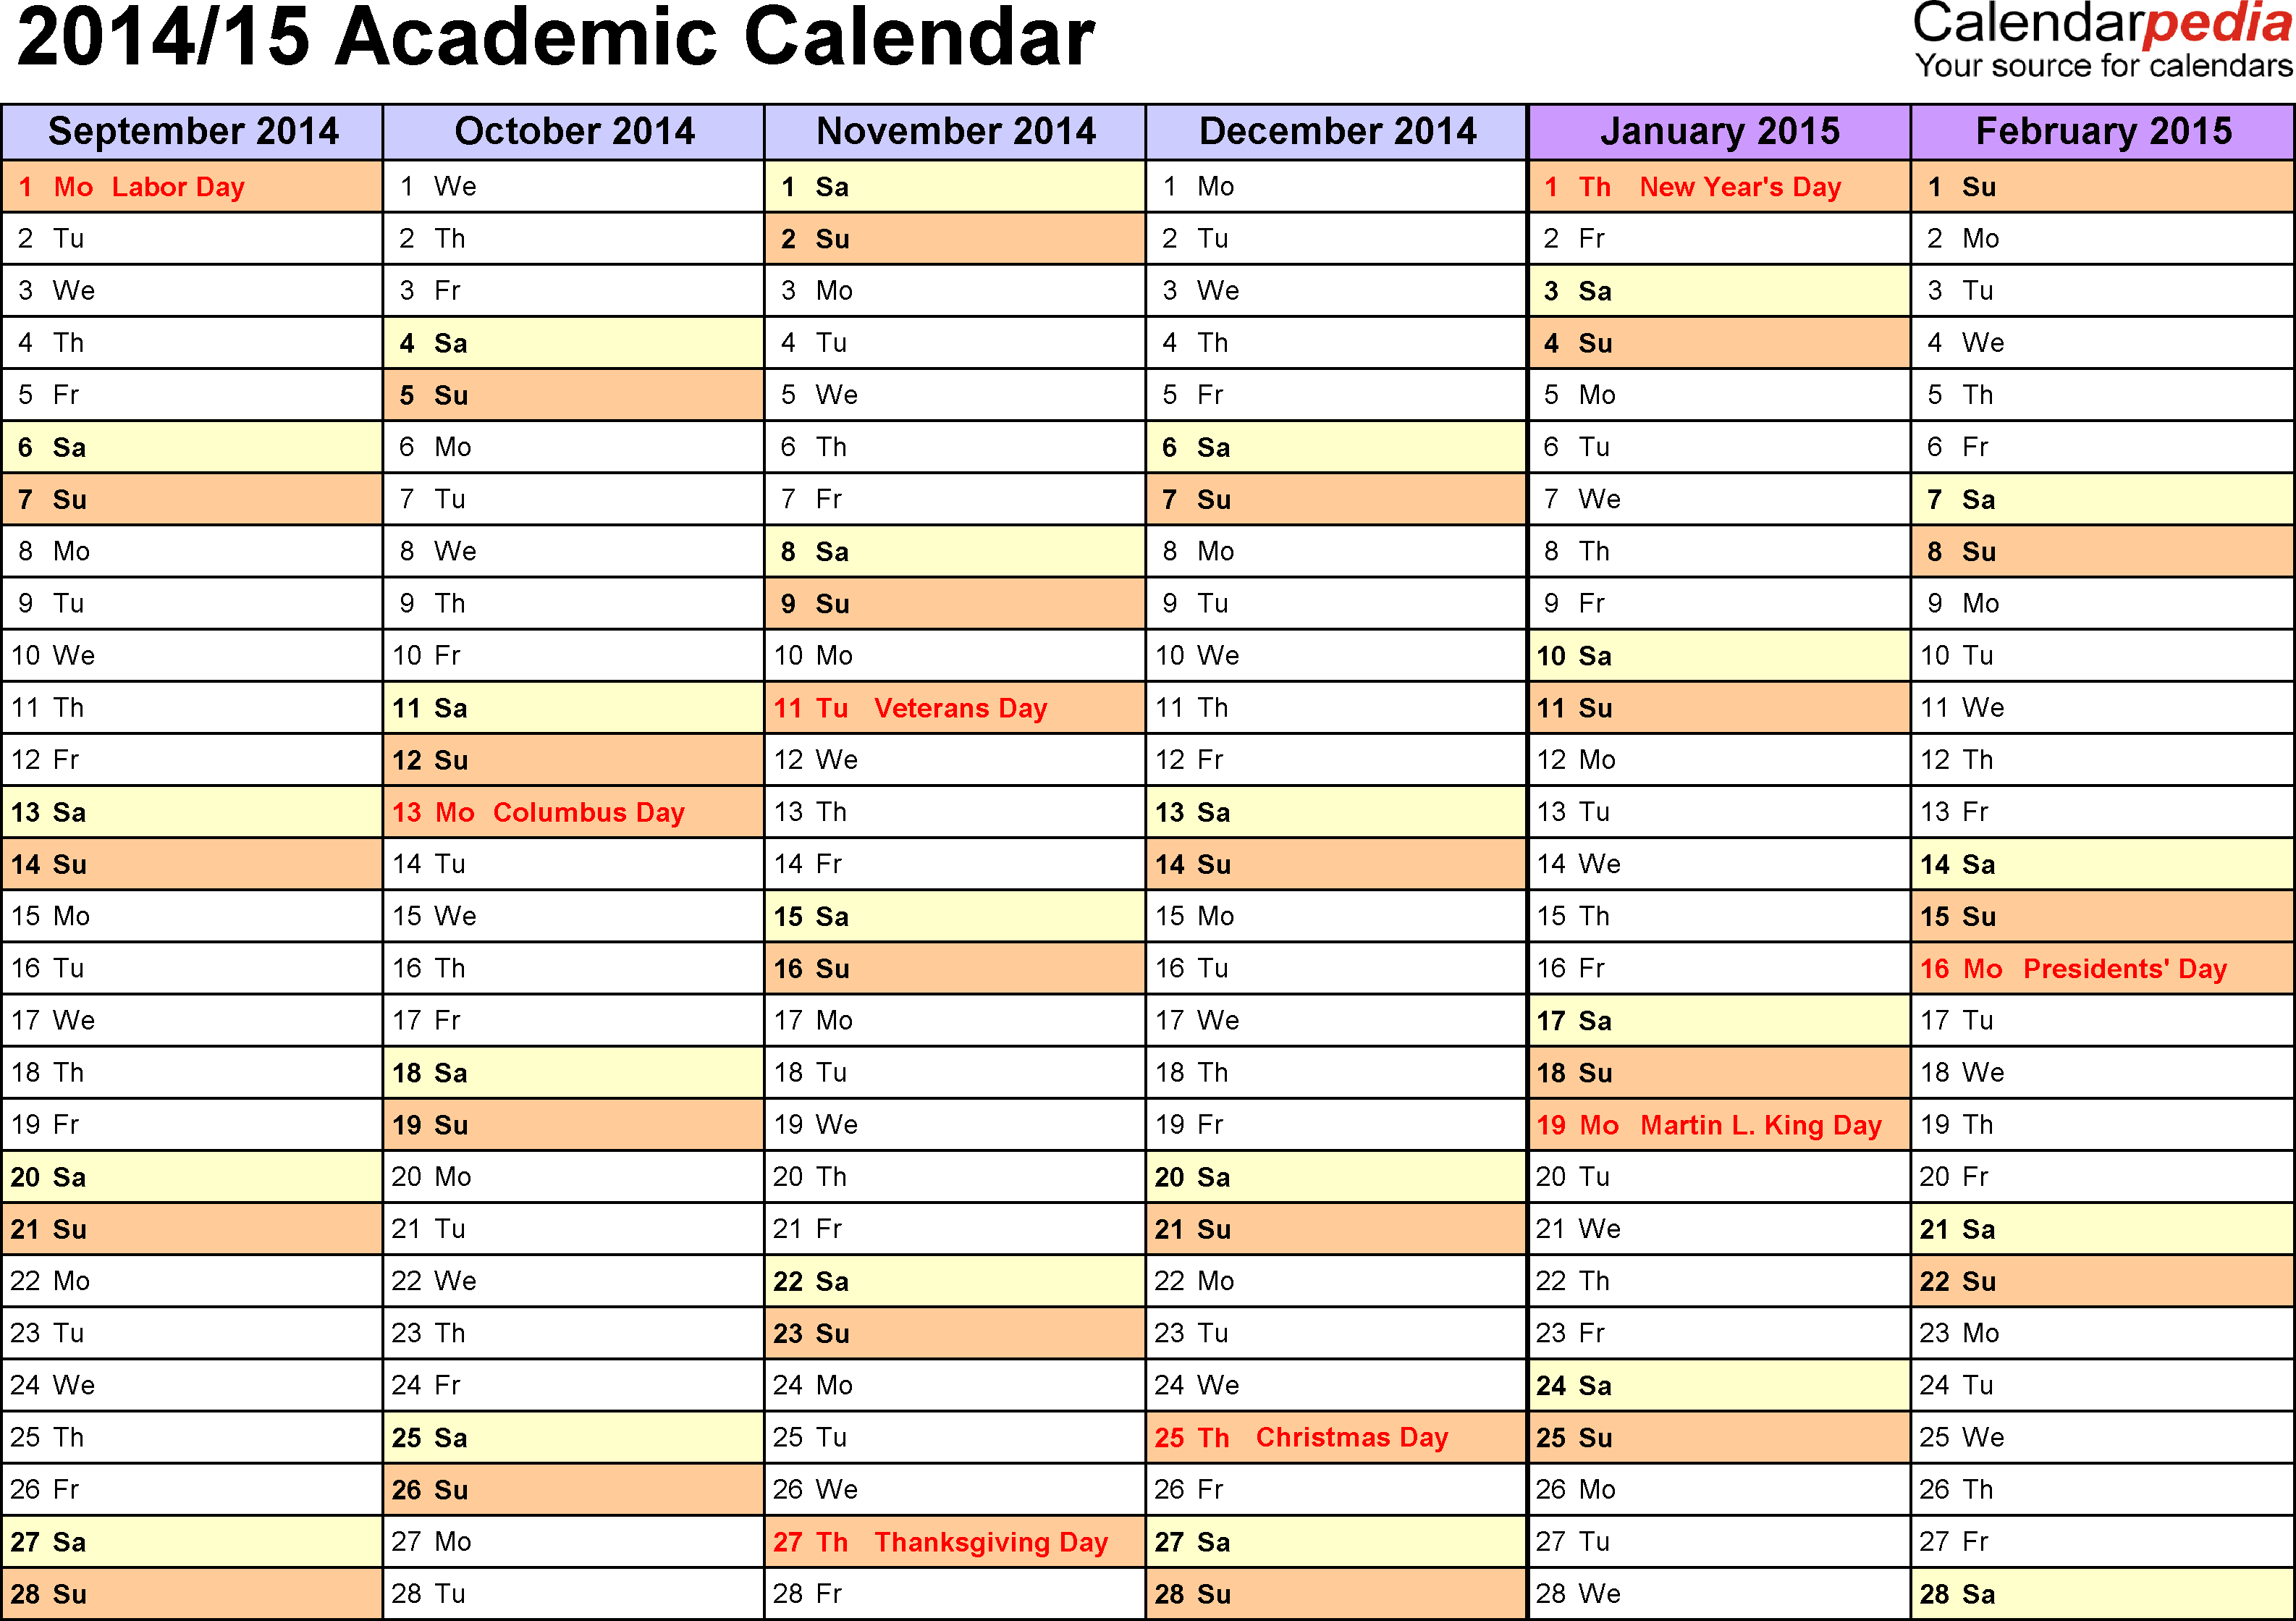 Academic calendar 2014/15 for Excel, landscape orientation, months ...